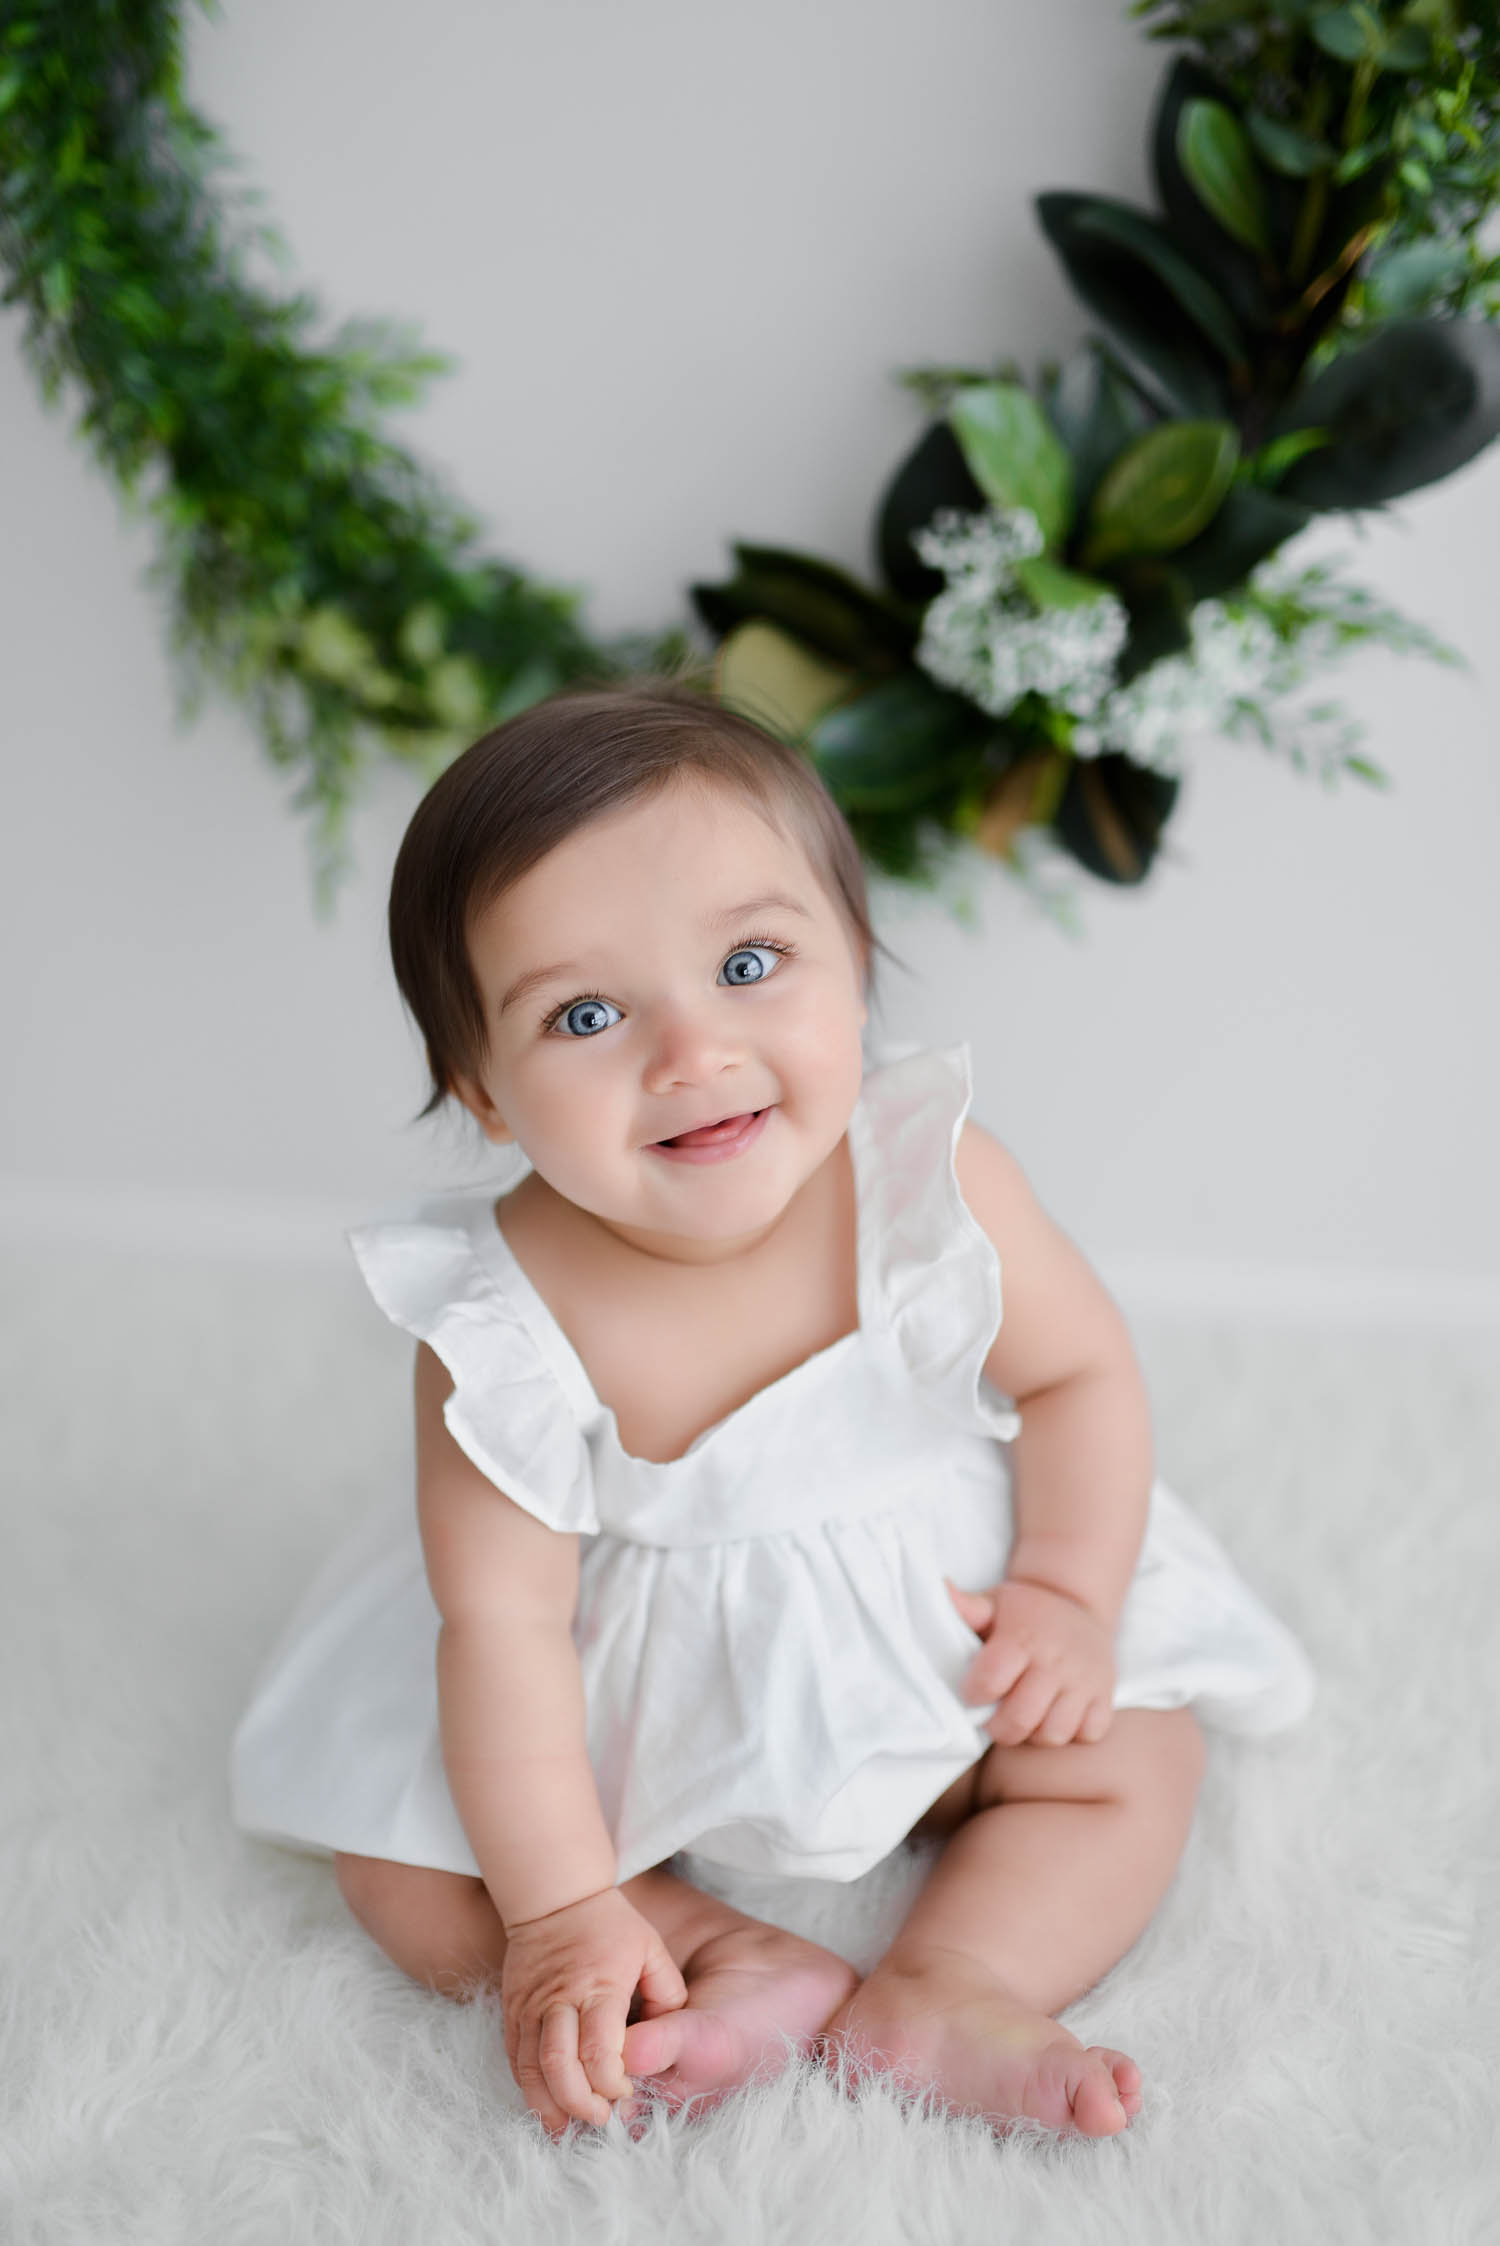 Baby in white Country Road summer dress smiling at camera with christmas wreath in background